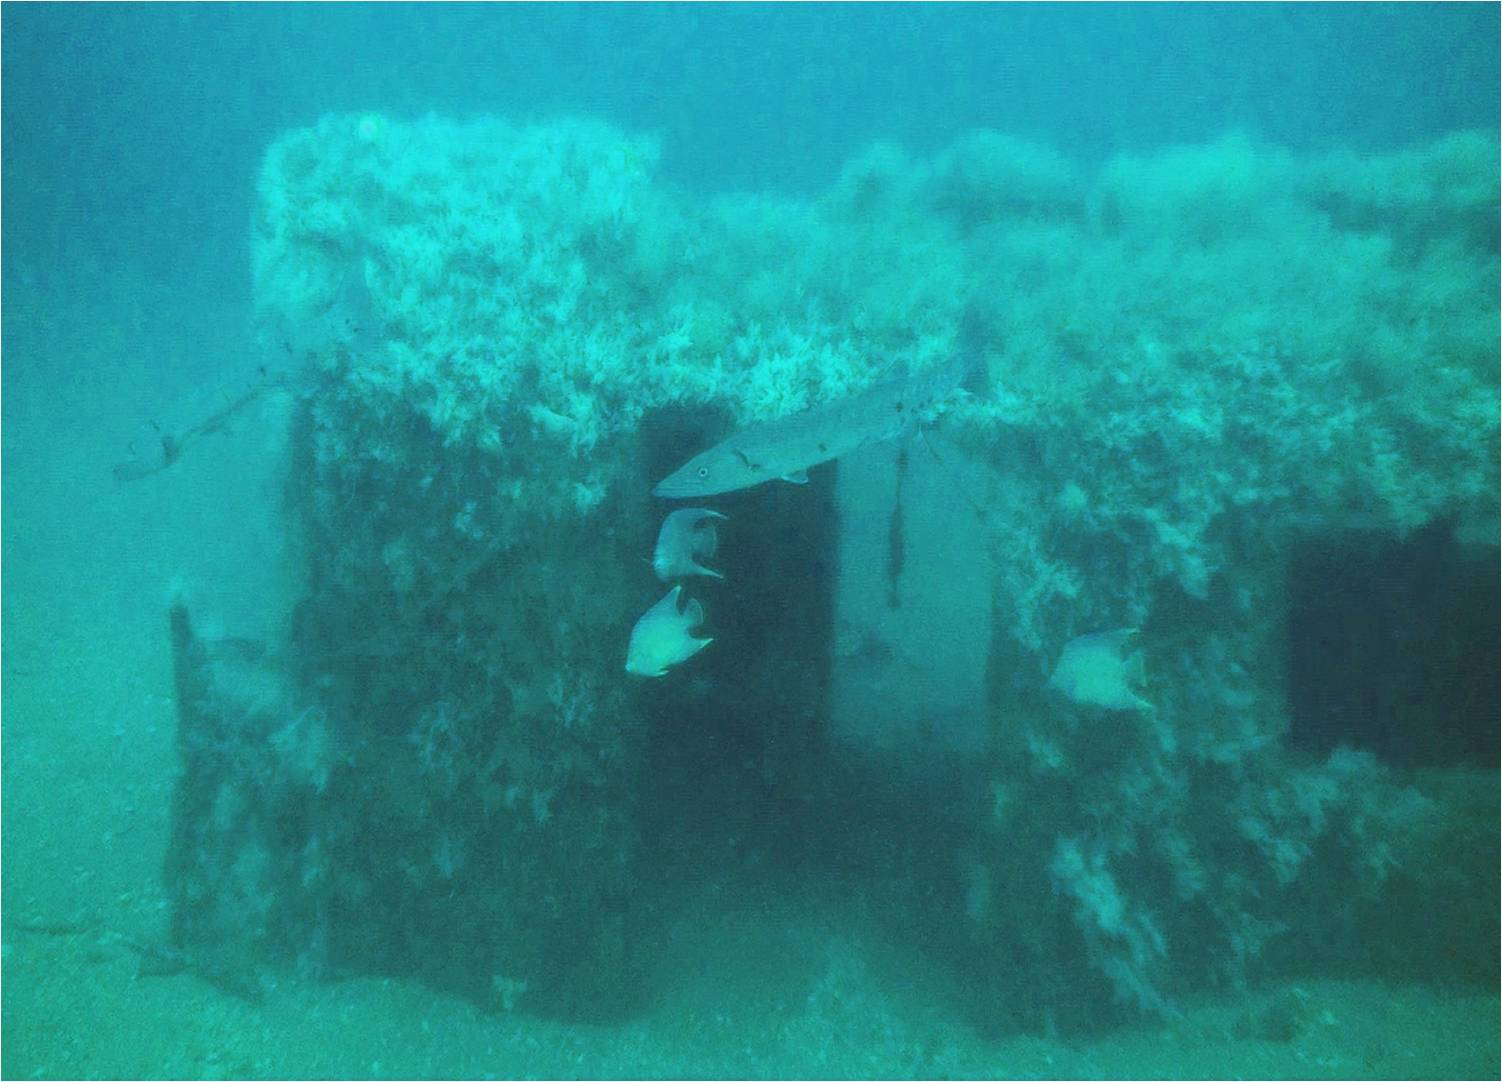 Artificial Reef, photo from NOAA